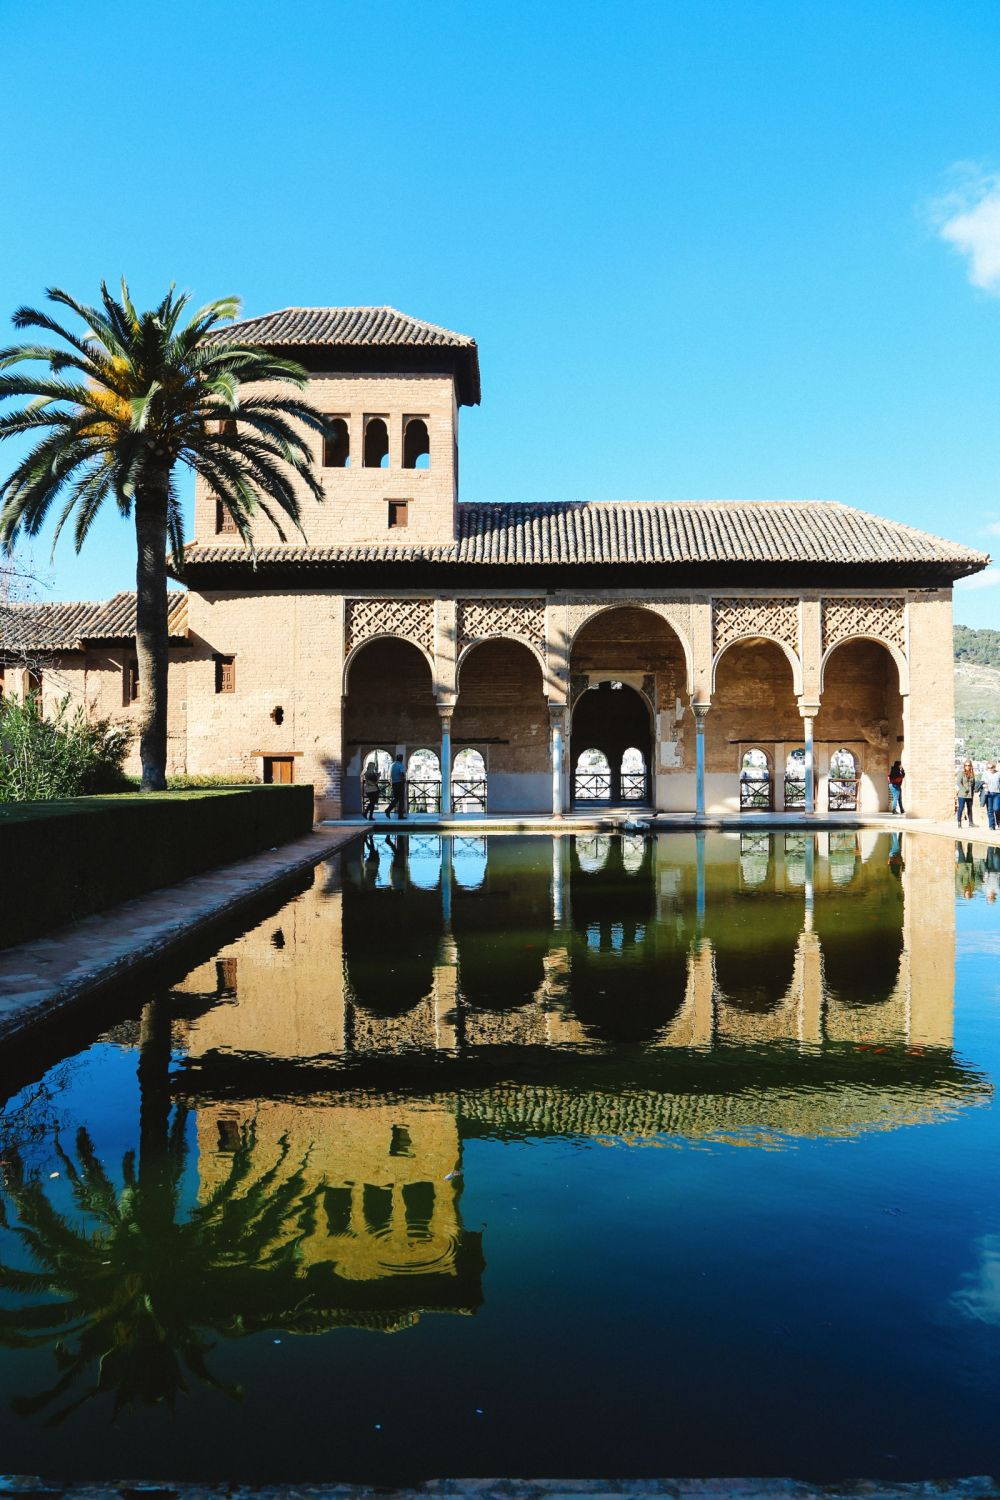 The Amazingly Intricate Alhambra Palace of Spain (80)